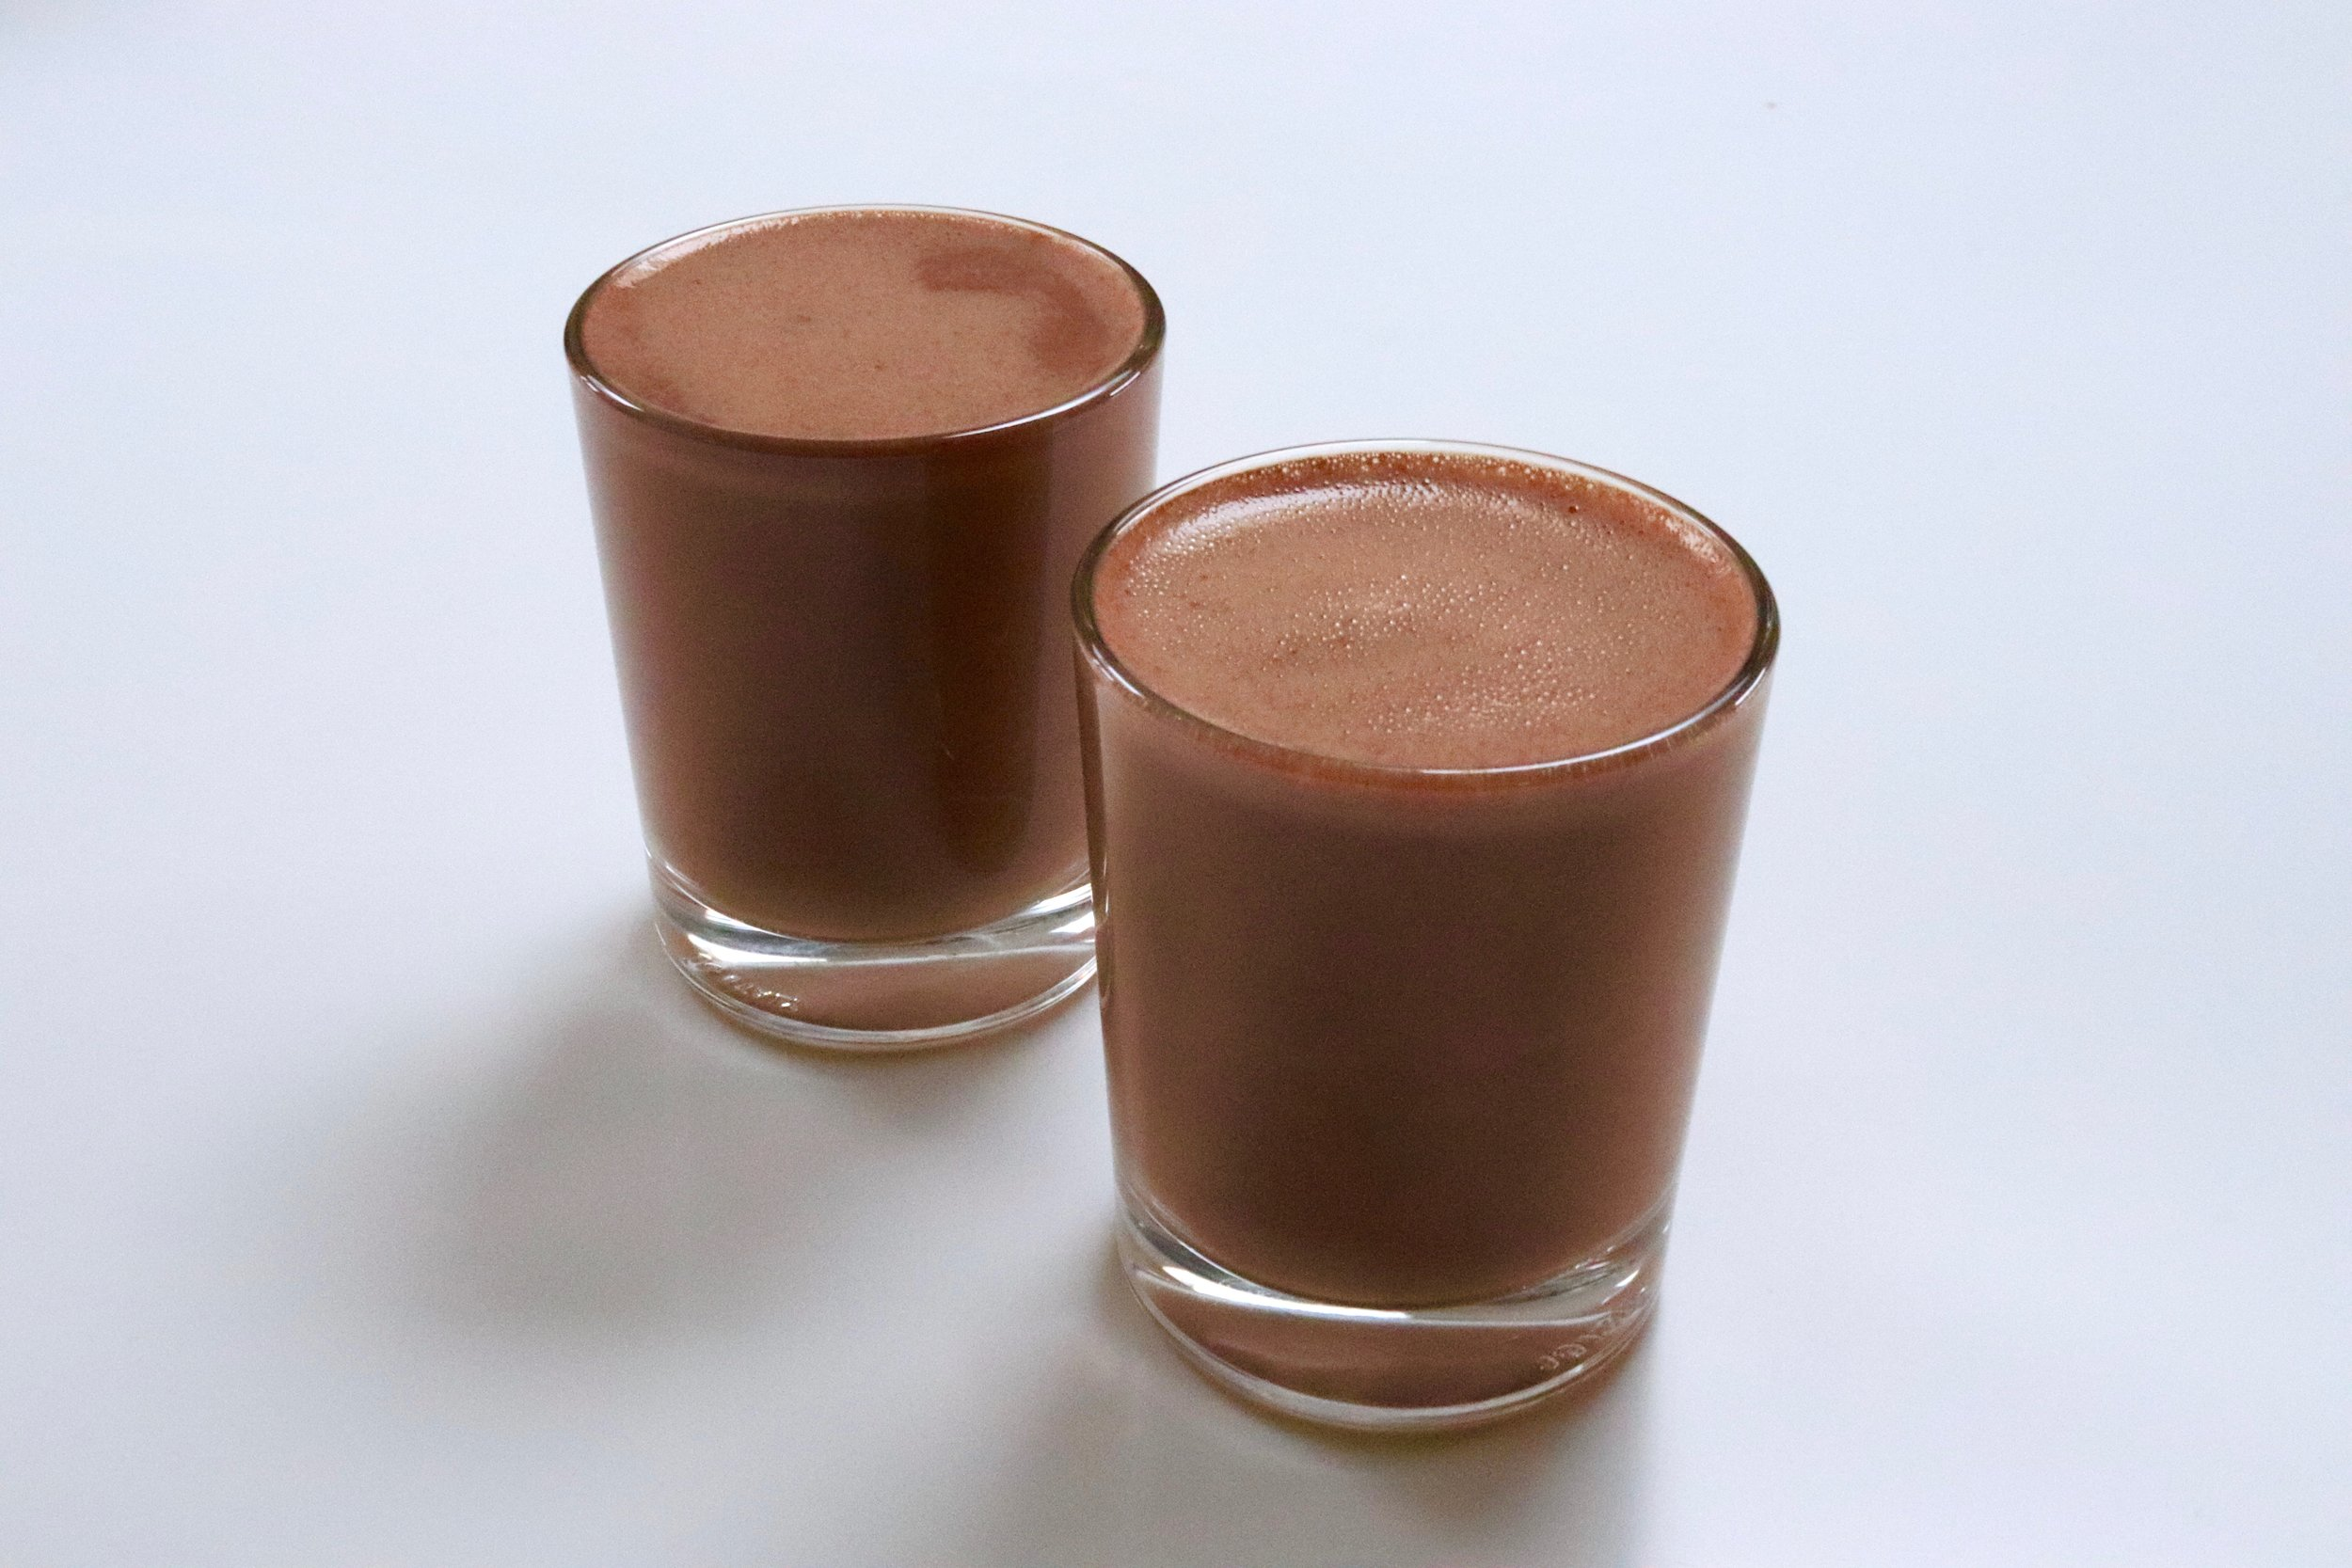 Generous, indulgent and naturally sweetened hot chocolate shots made from raw cacao beans